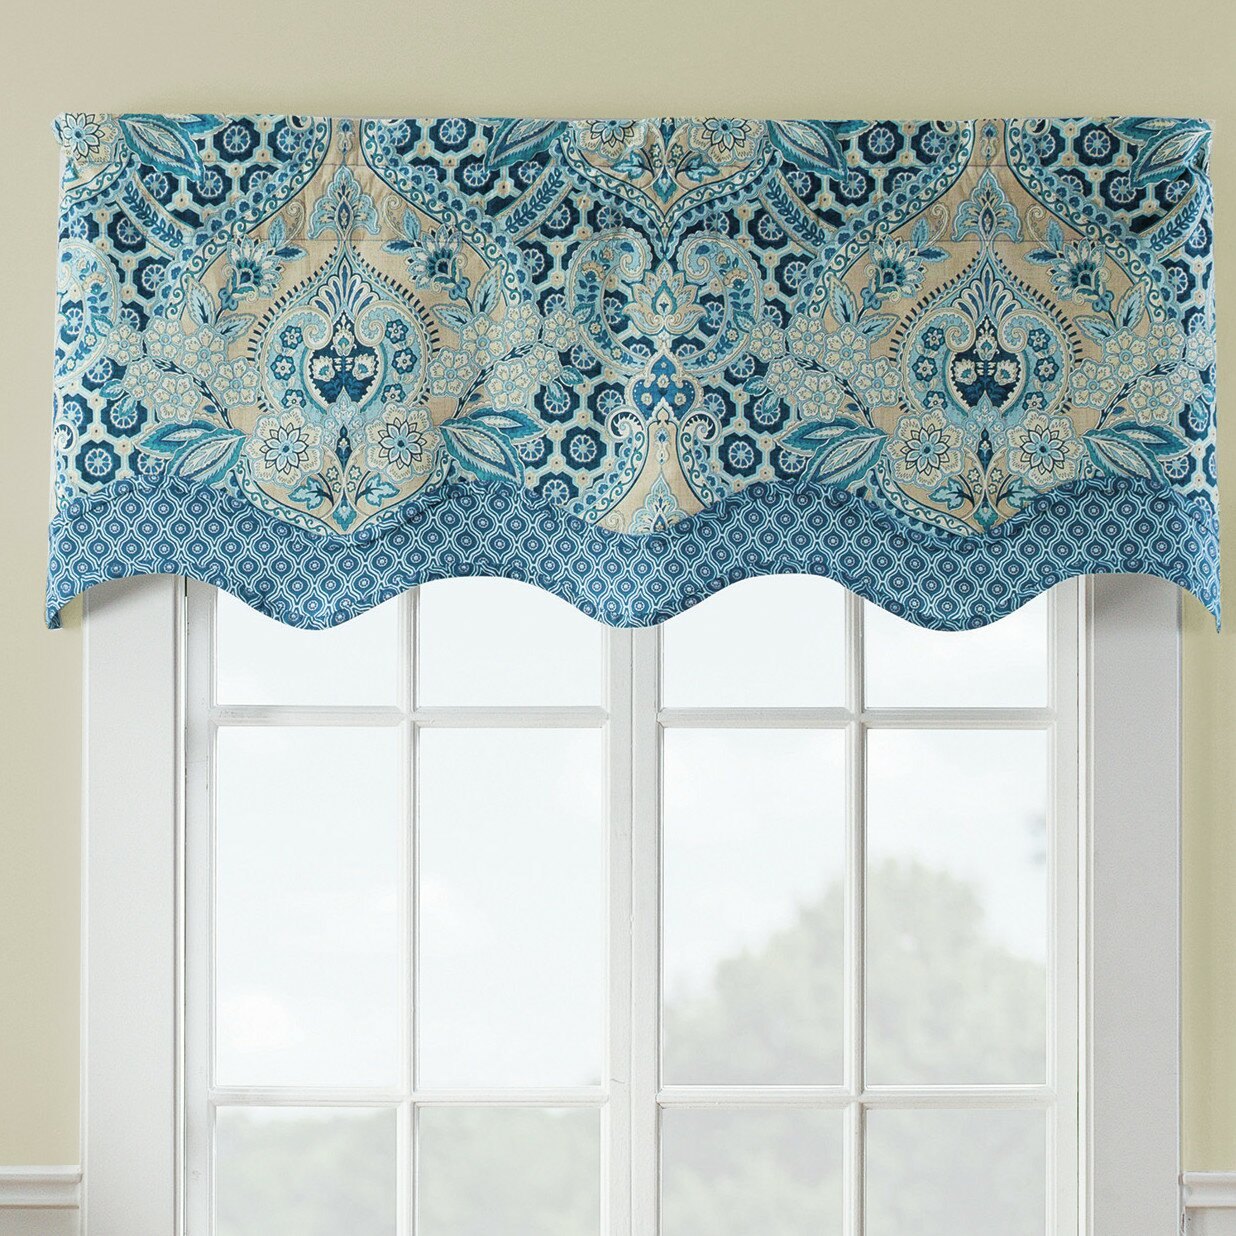 Cute Living Room Valances for Your Home Decorating Ideas: Beautiful Valances | Living Room Valances | Valance Curtains